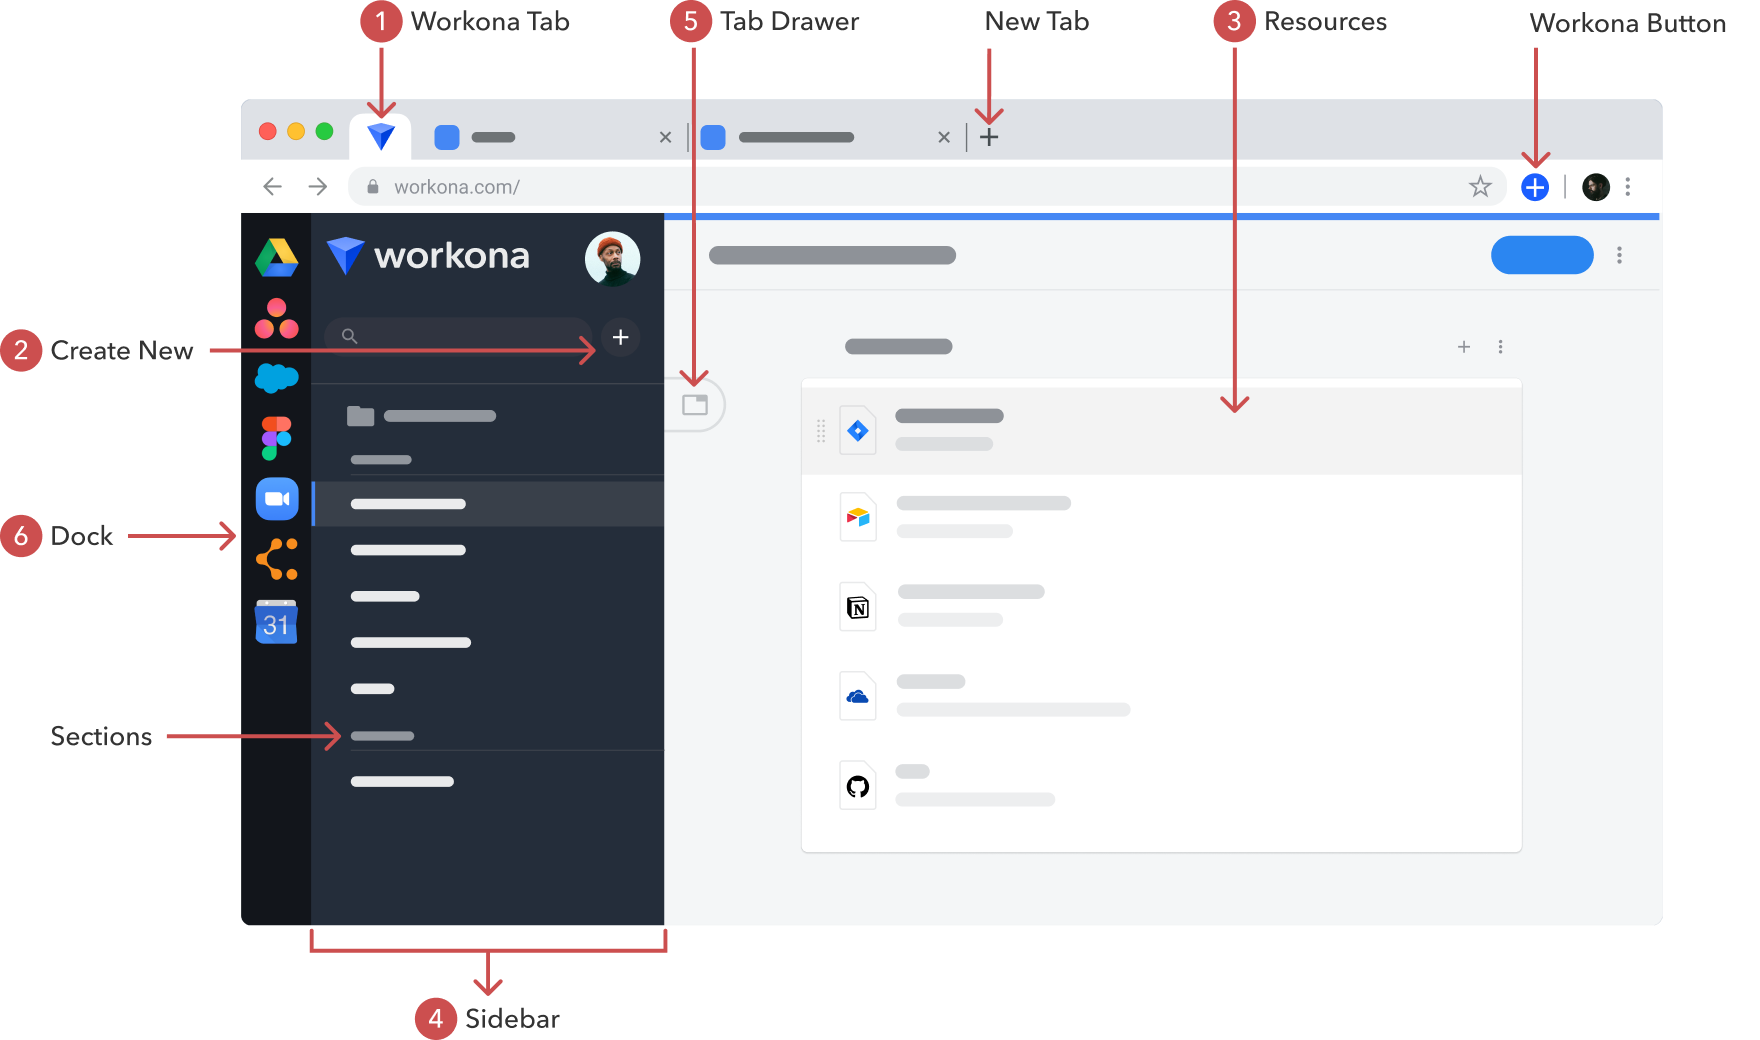 Workona interface and features